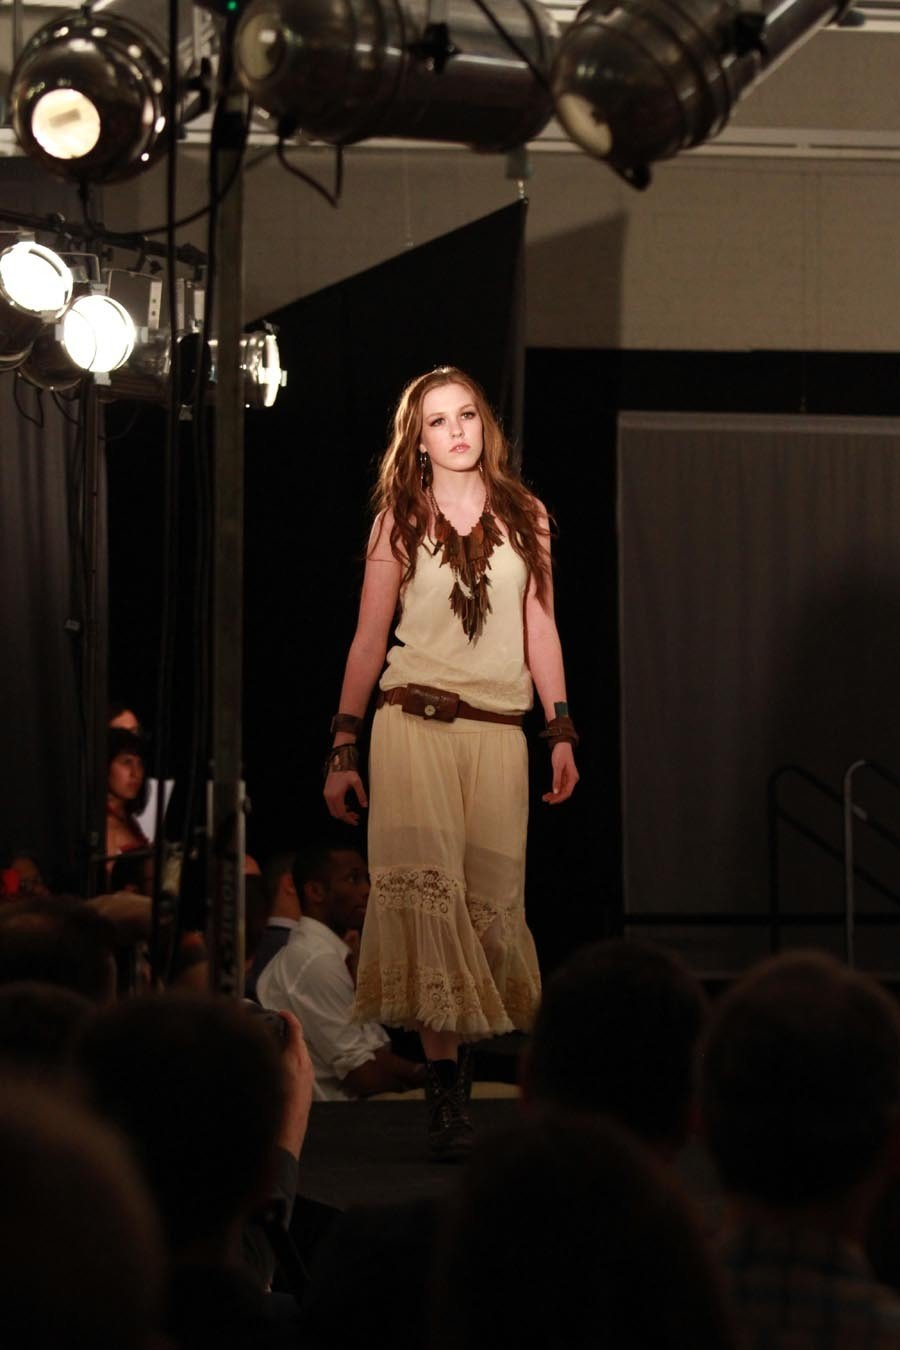 Model Ashton Edens takes the runway wearing SSD Jewelry.